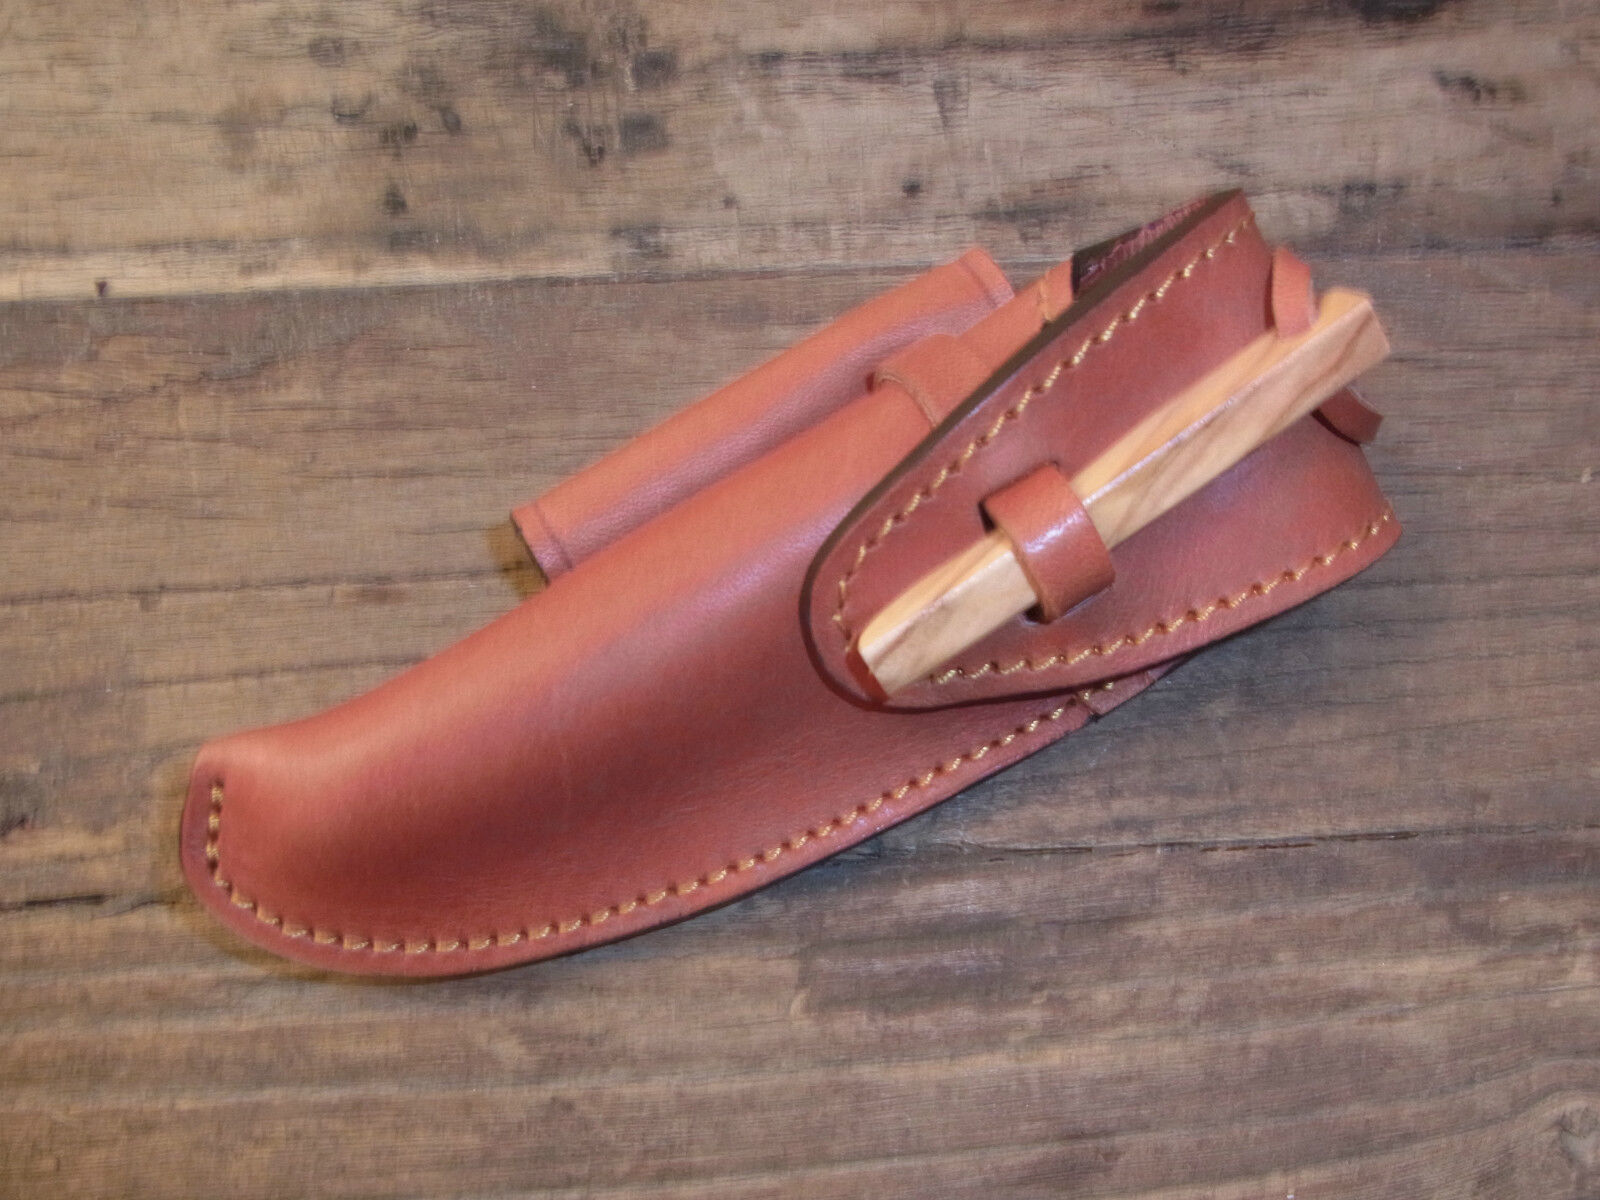 Laguiole Elegant gürtellederholster  Model Trappeur Max CAPDEBARTHES Brown Maya  order now with big discount & free delivery